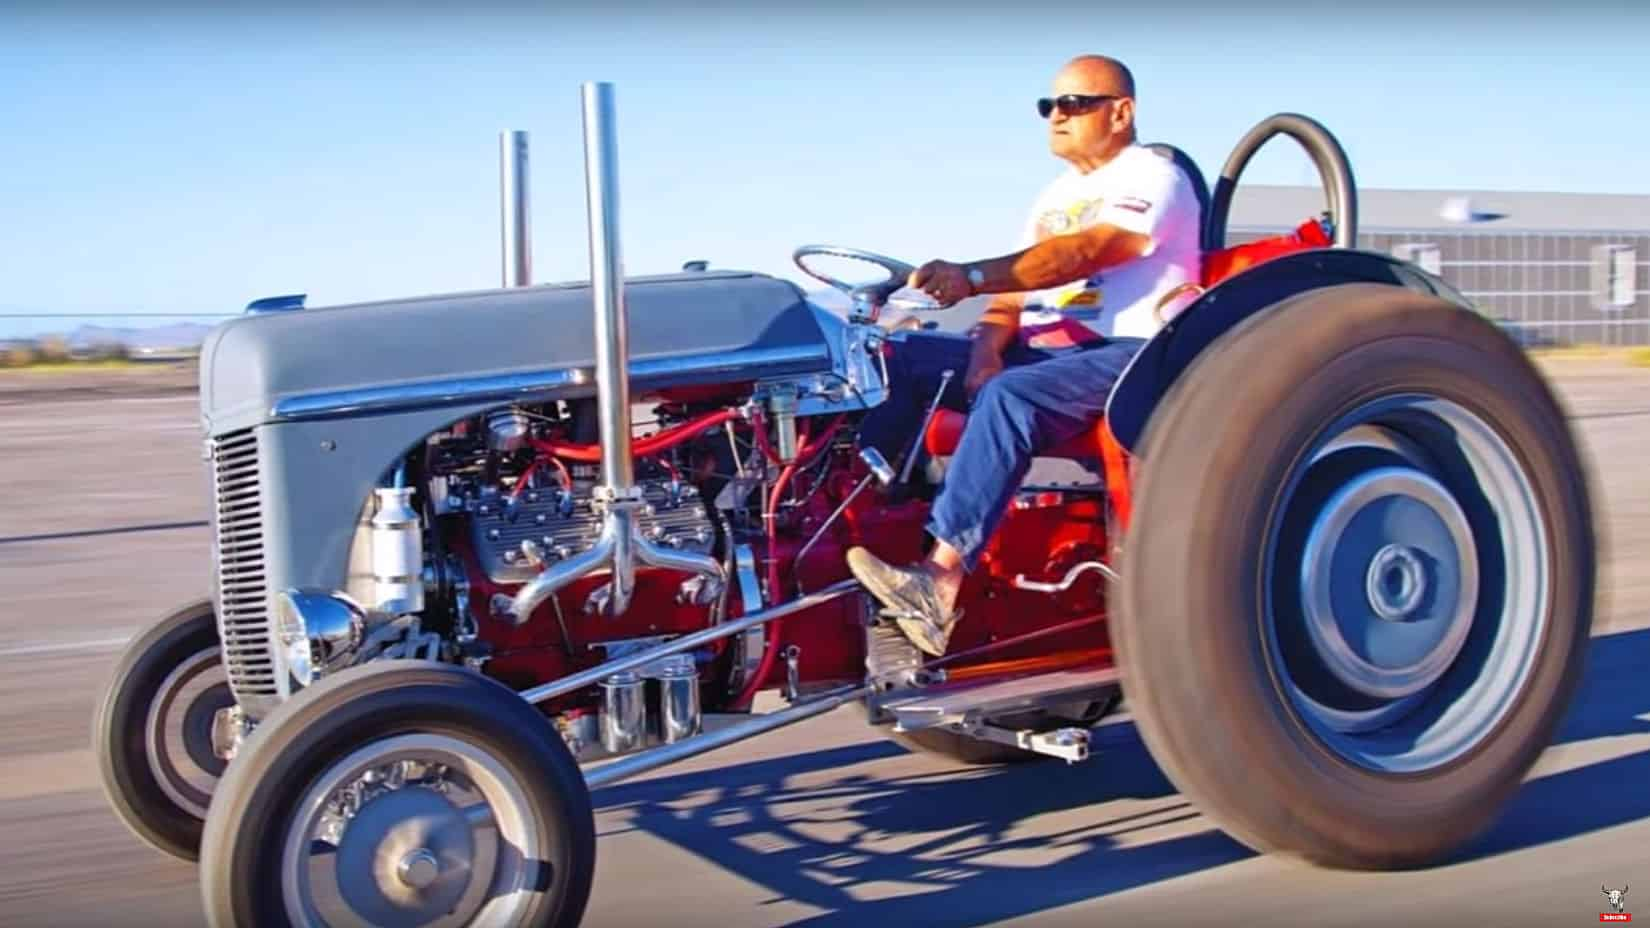 Hot Rod And Drag Racing Tractor Compilation